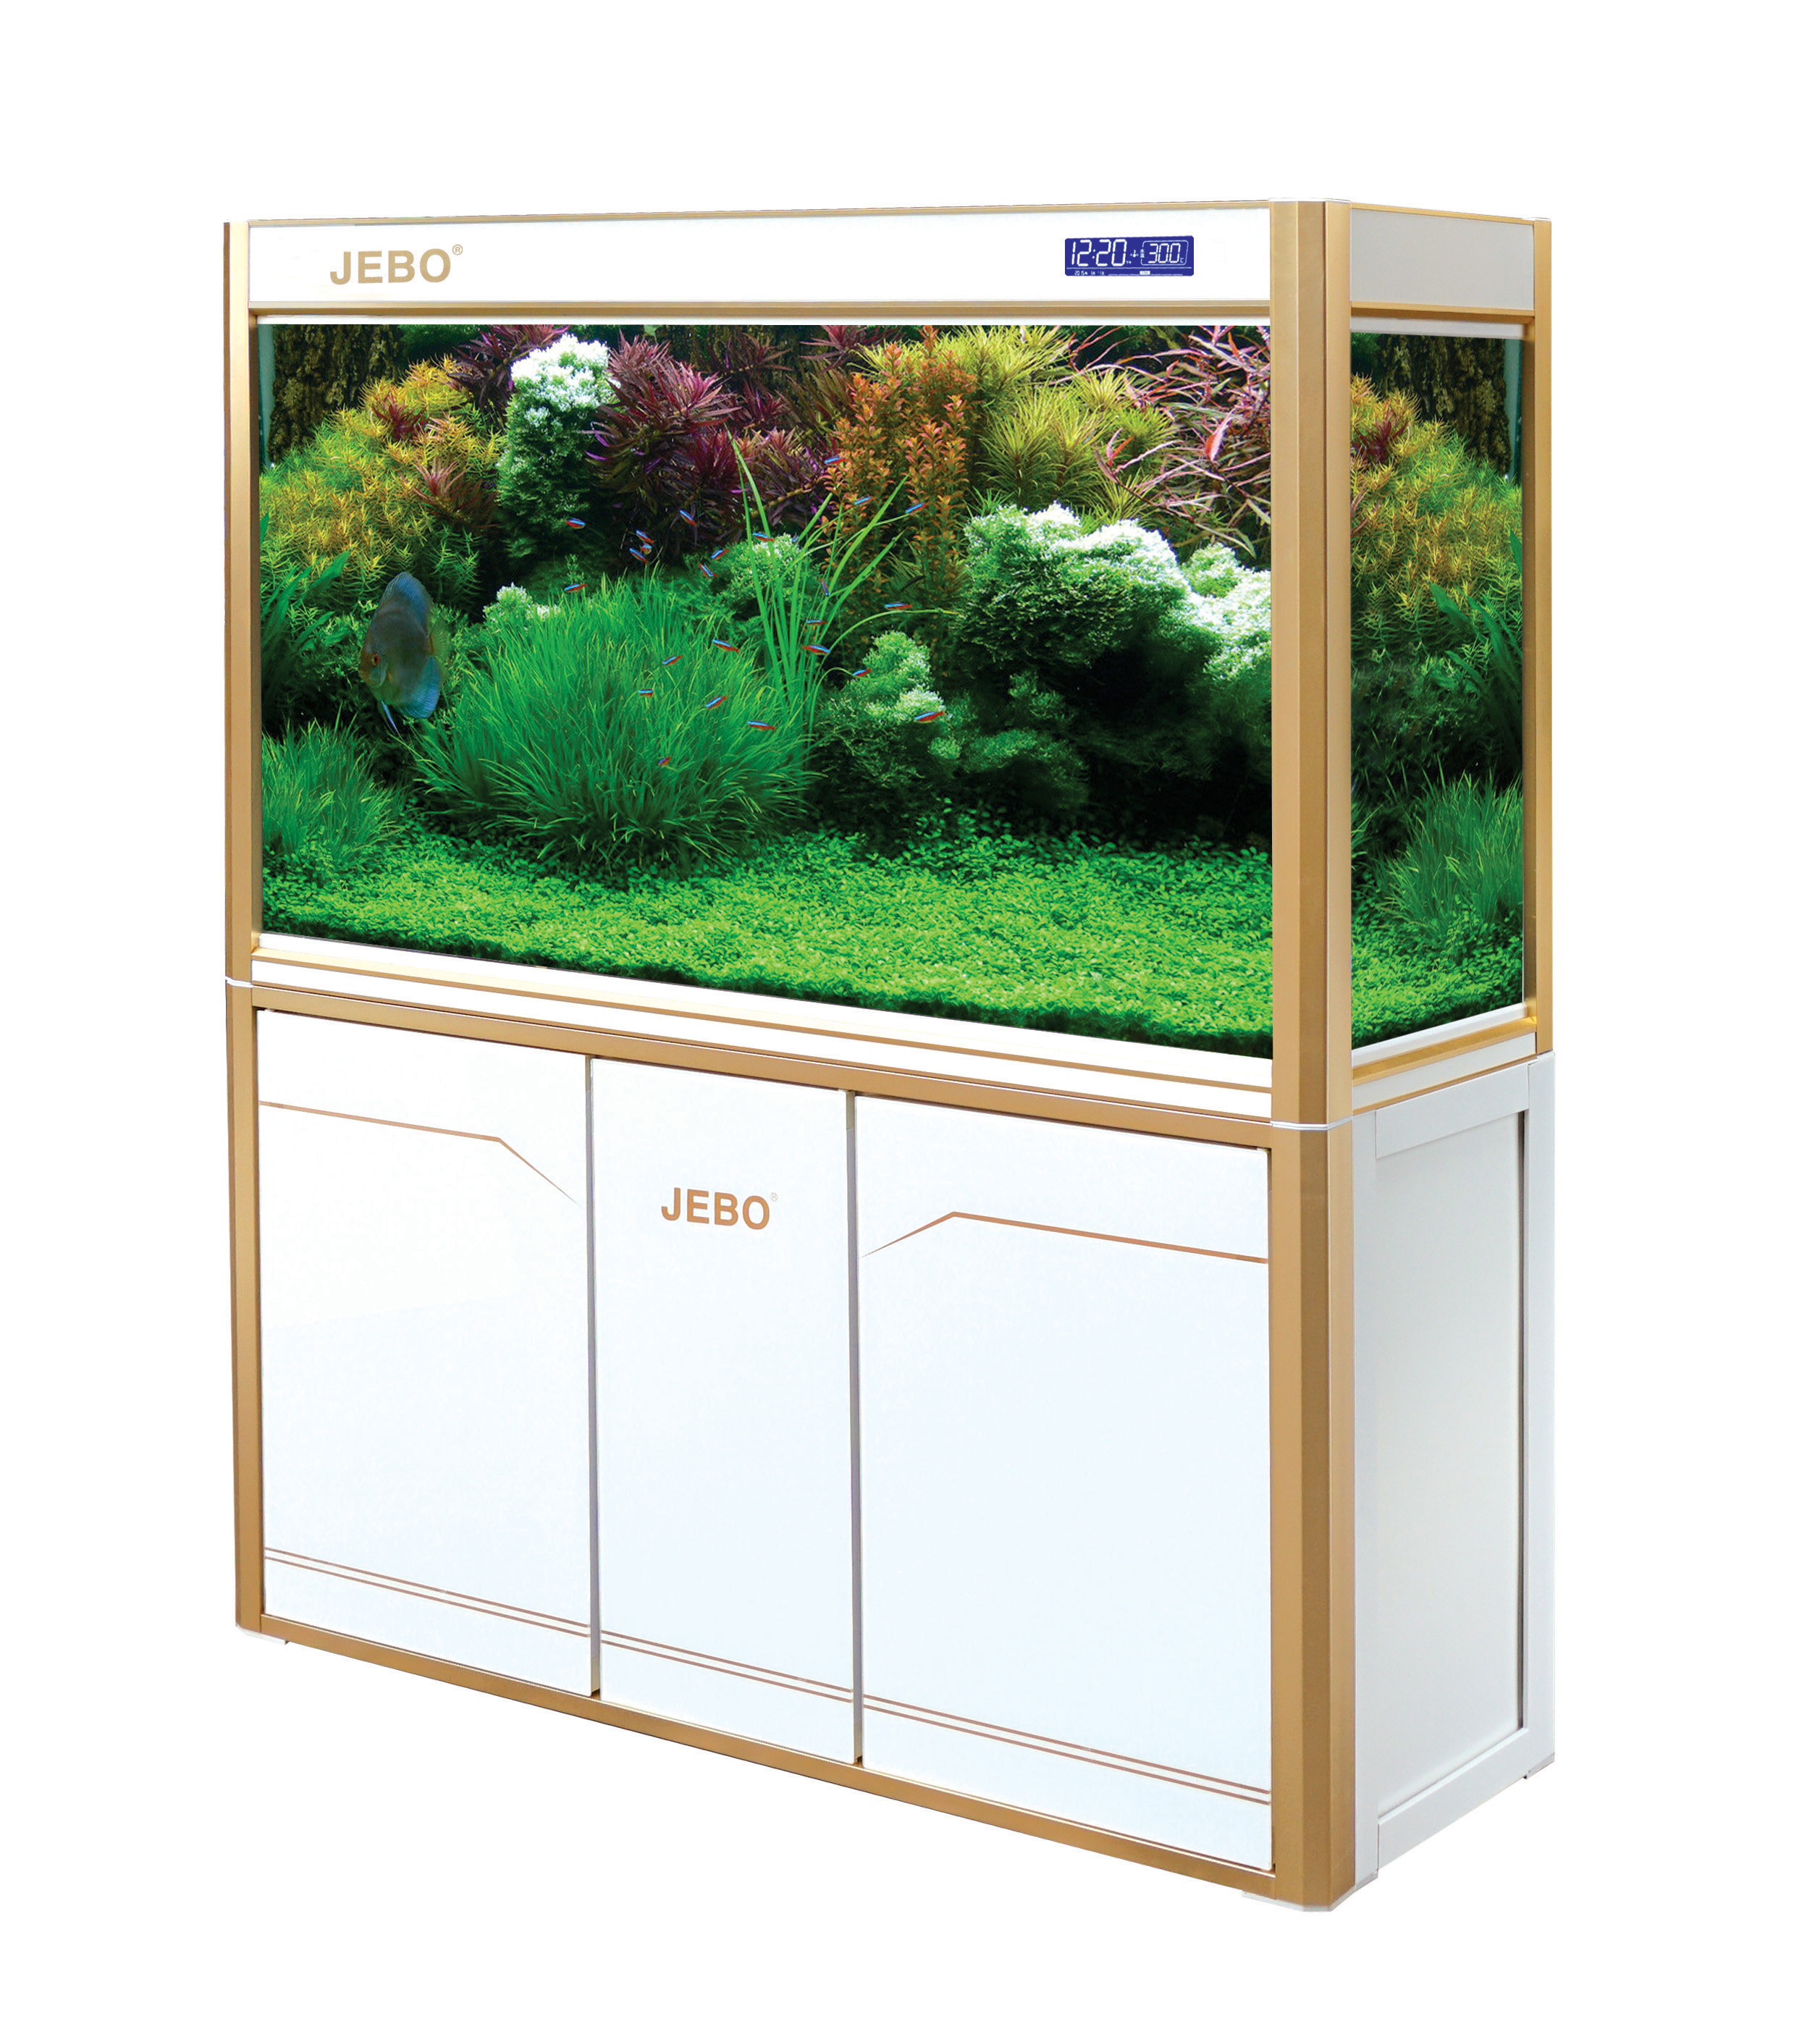 Fish Tank Set Fish Tank Set Suppliers and Manufacturers at Alibaba